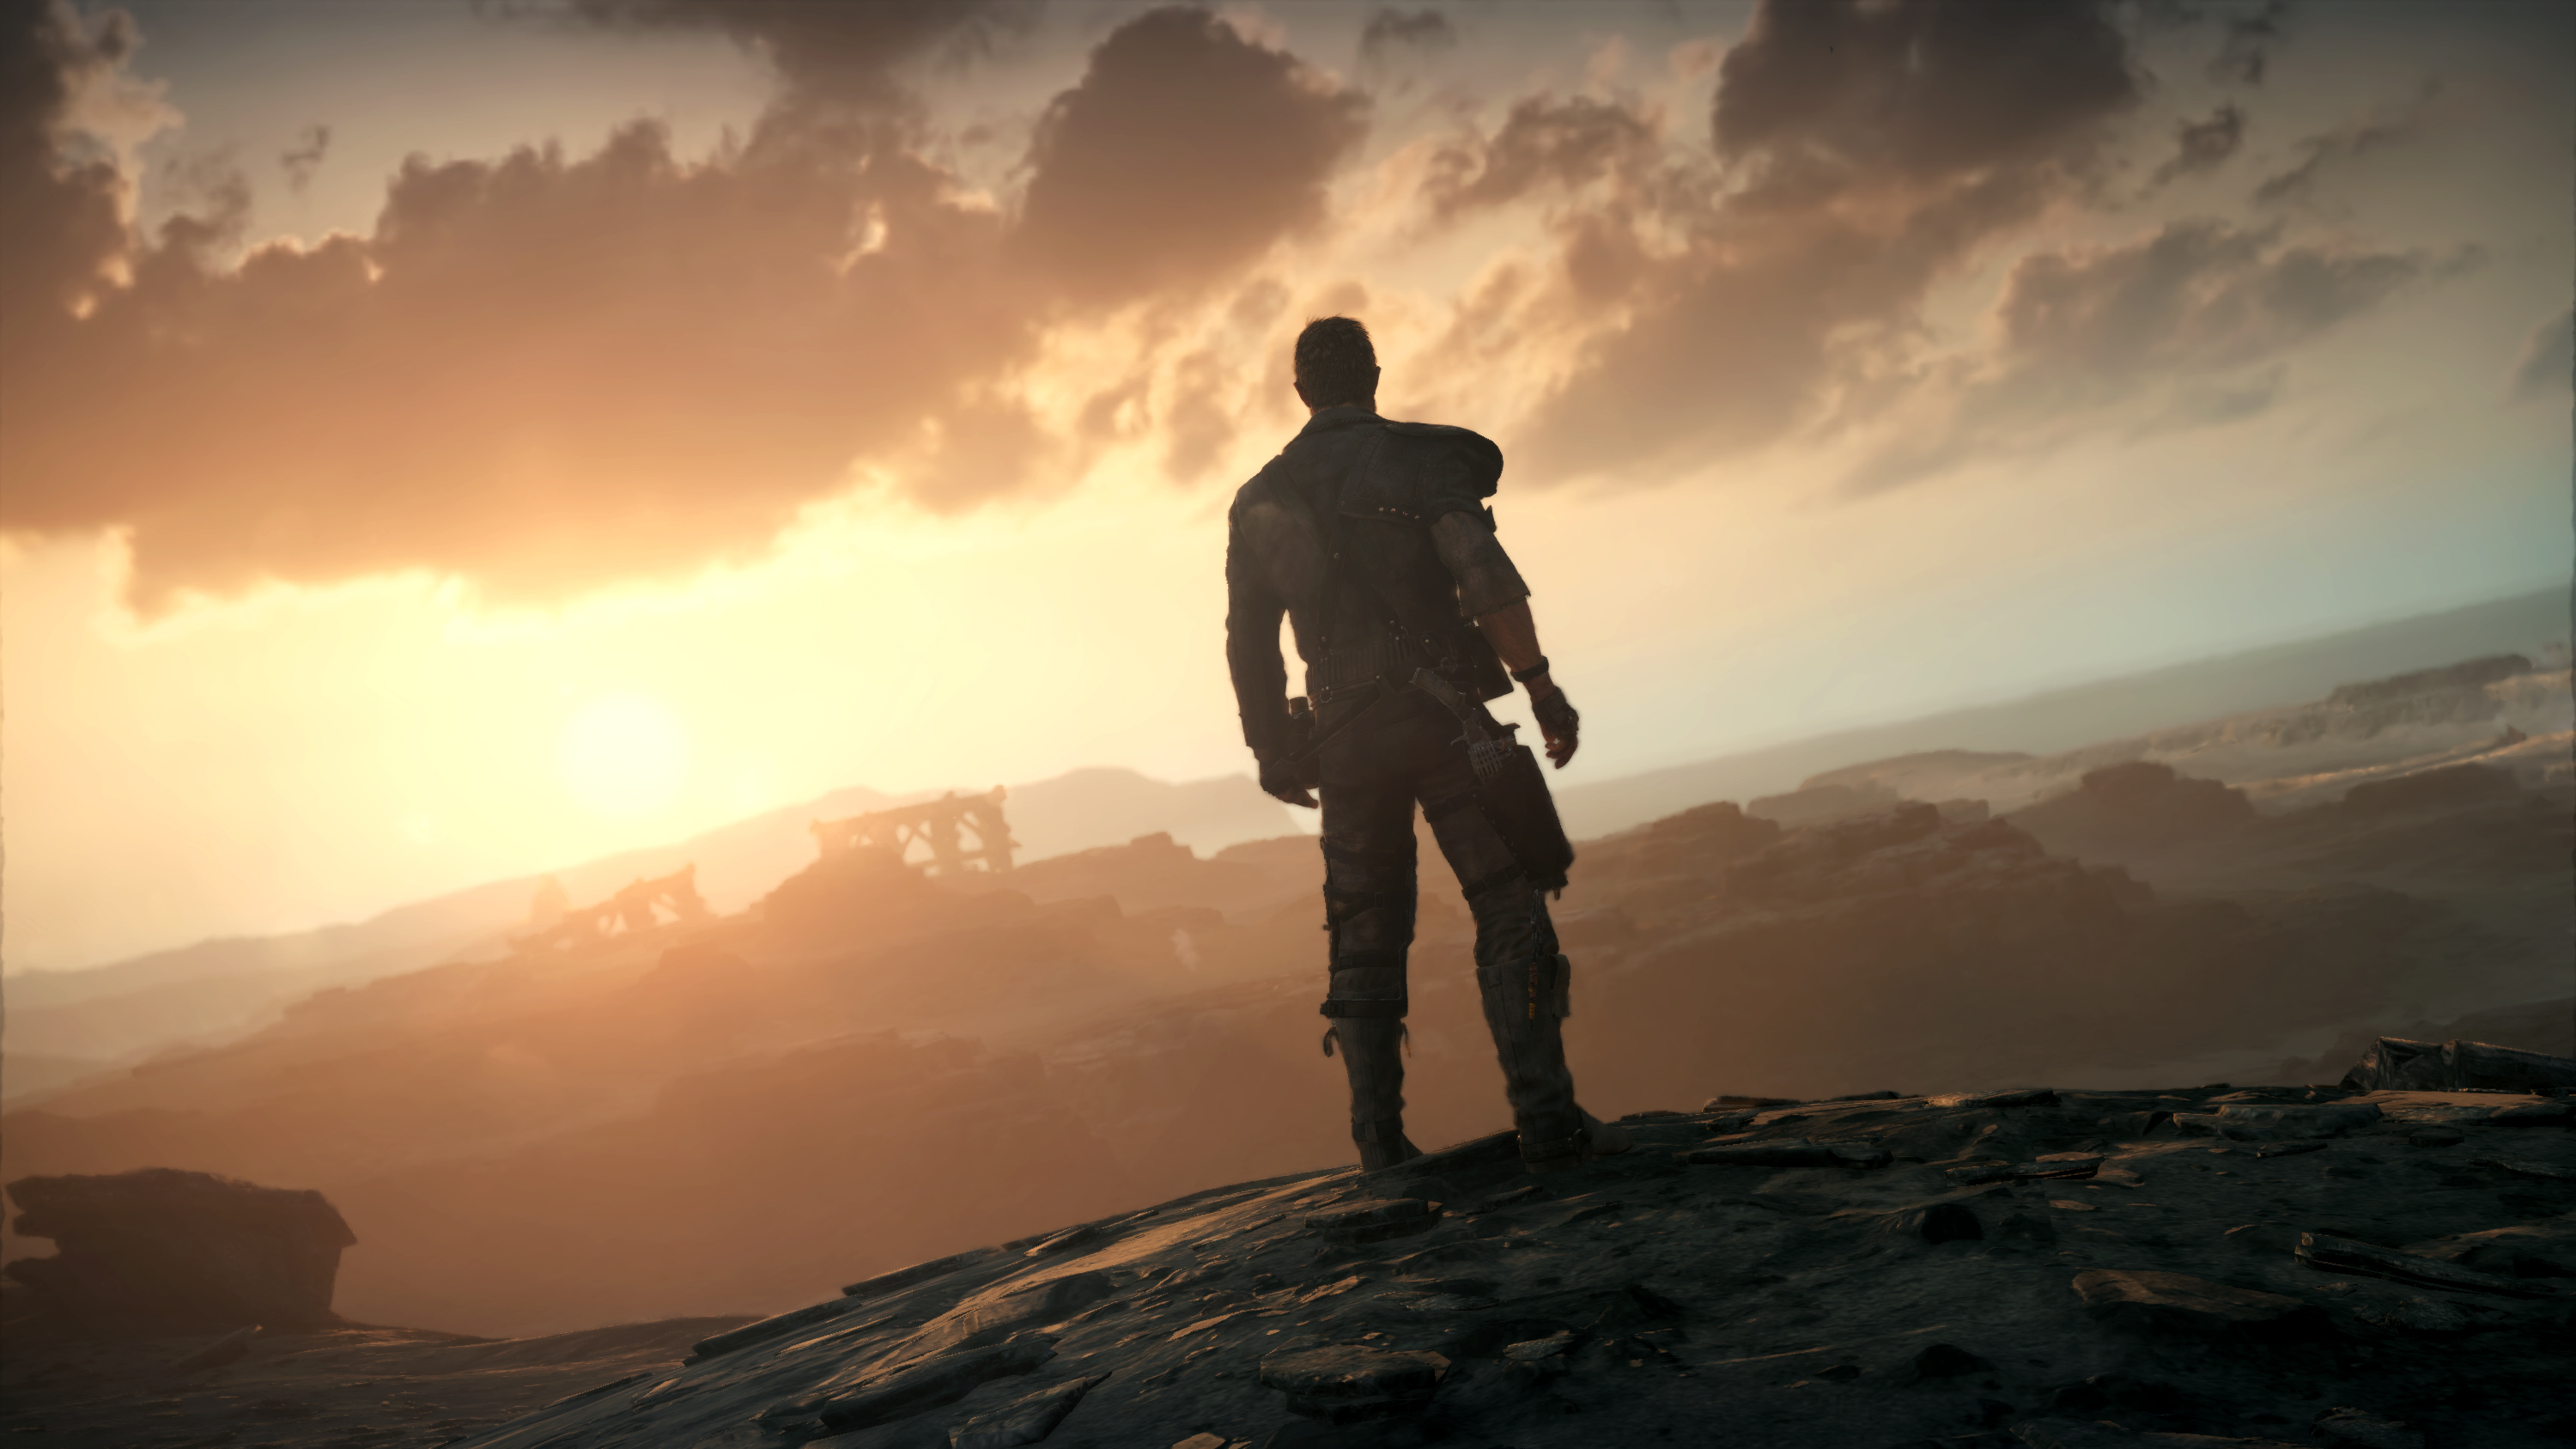 September 21 2015 By Stephen Comments Off on Mad Max Game Wallpaper 3000x1687